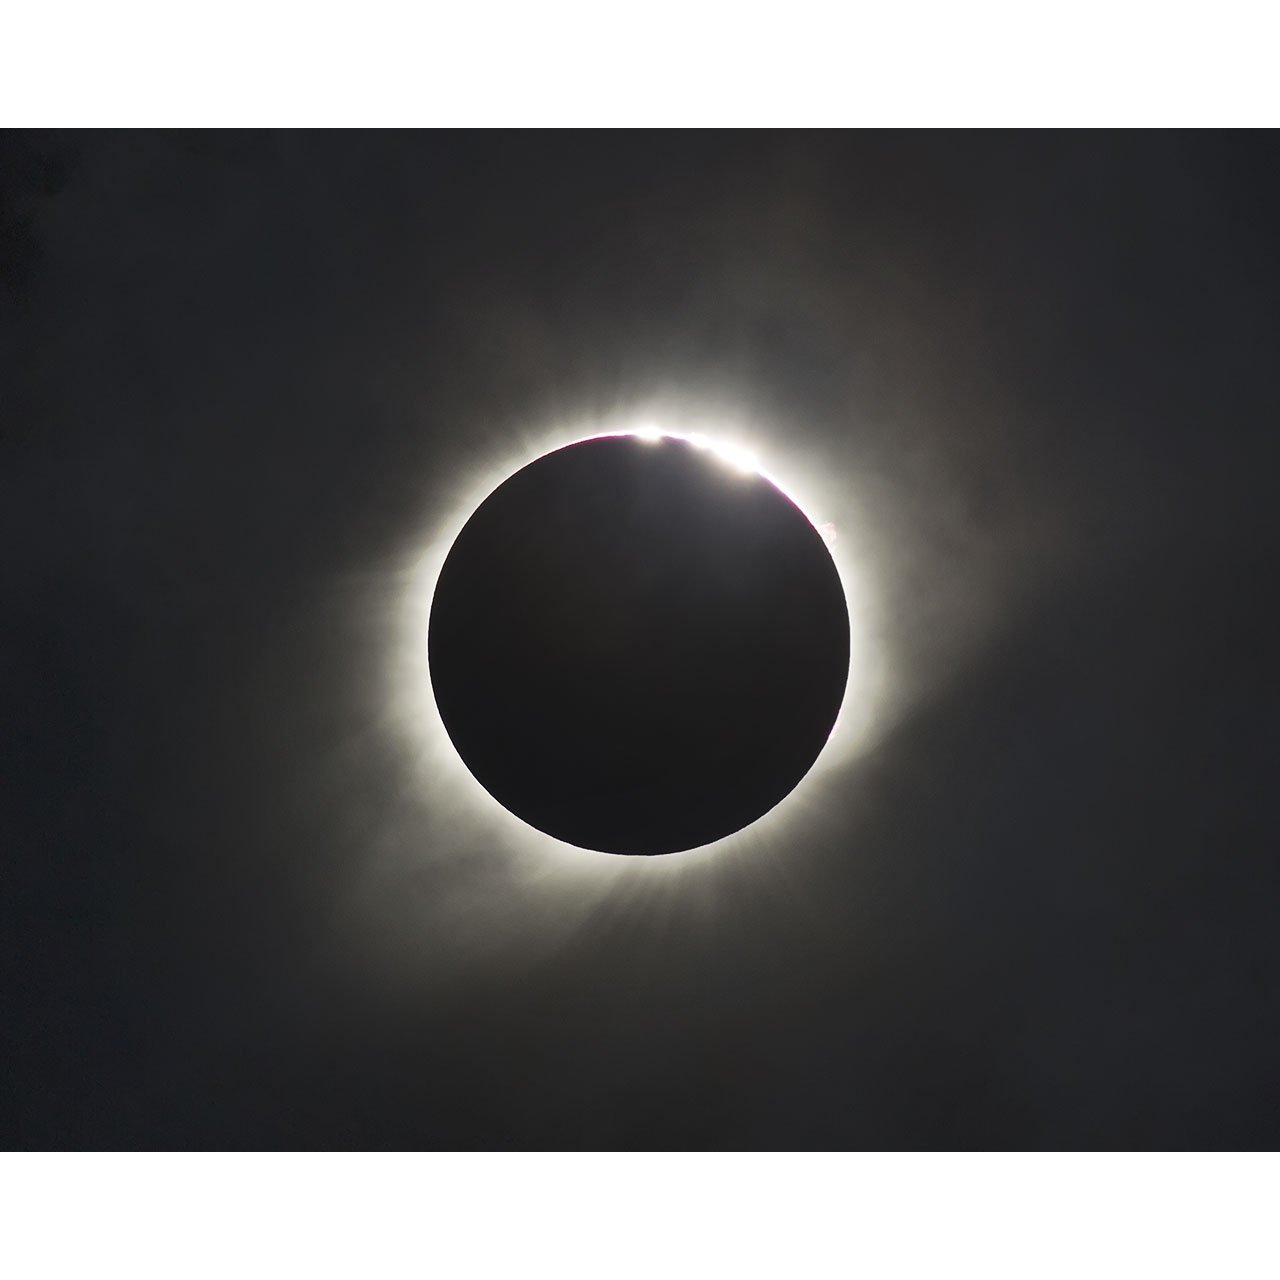 8x10 Solar Eclipse Print Crater Light by TravLin Photography